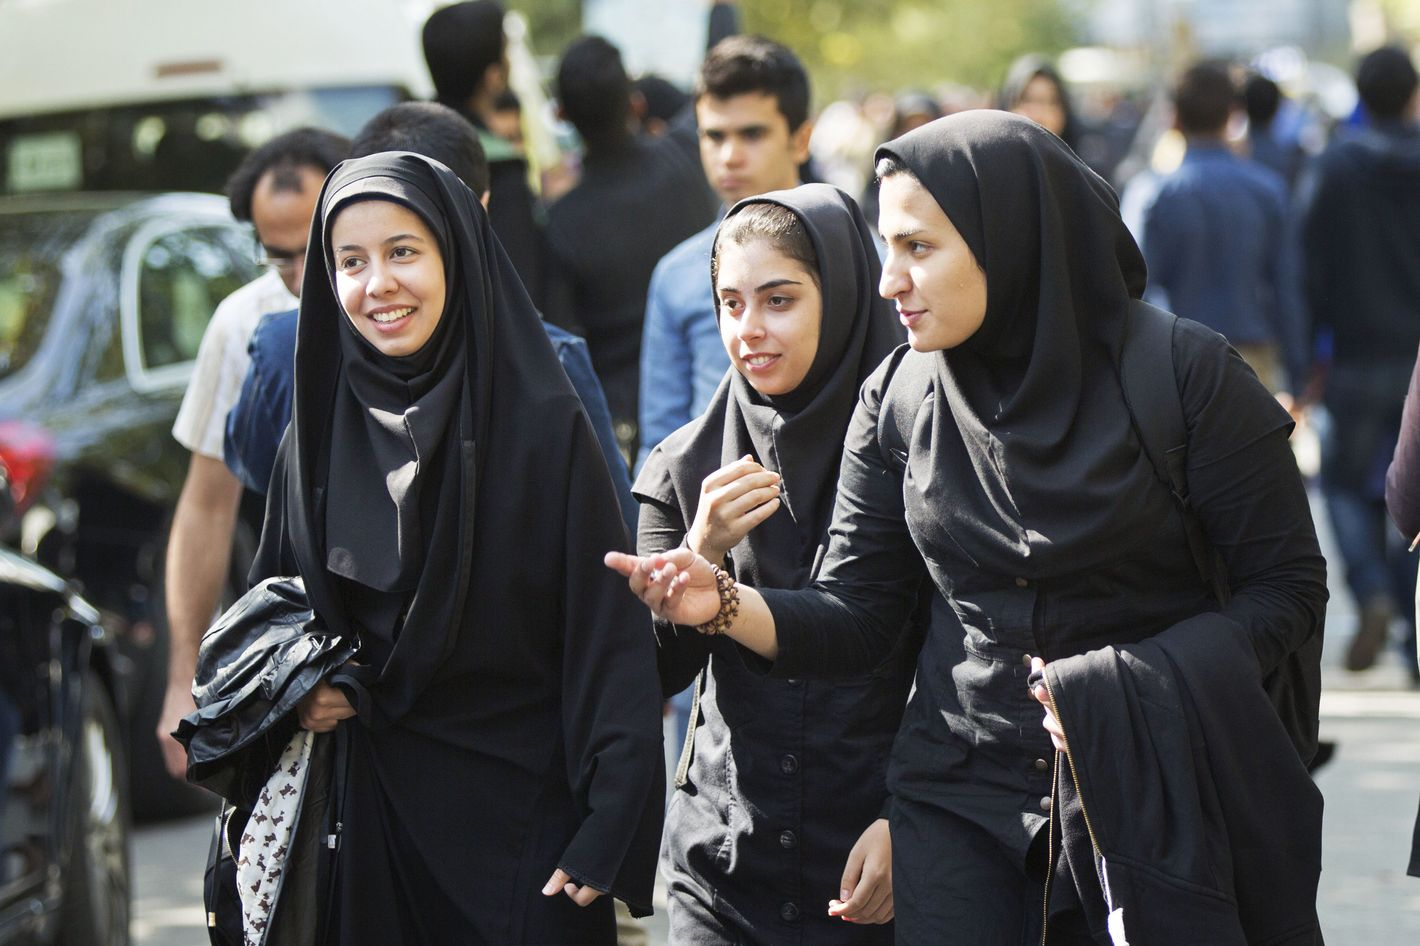 Iranian girls in black dresses